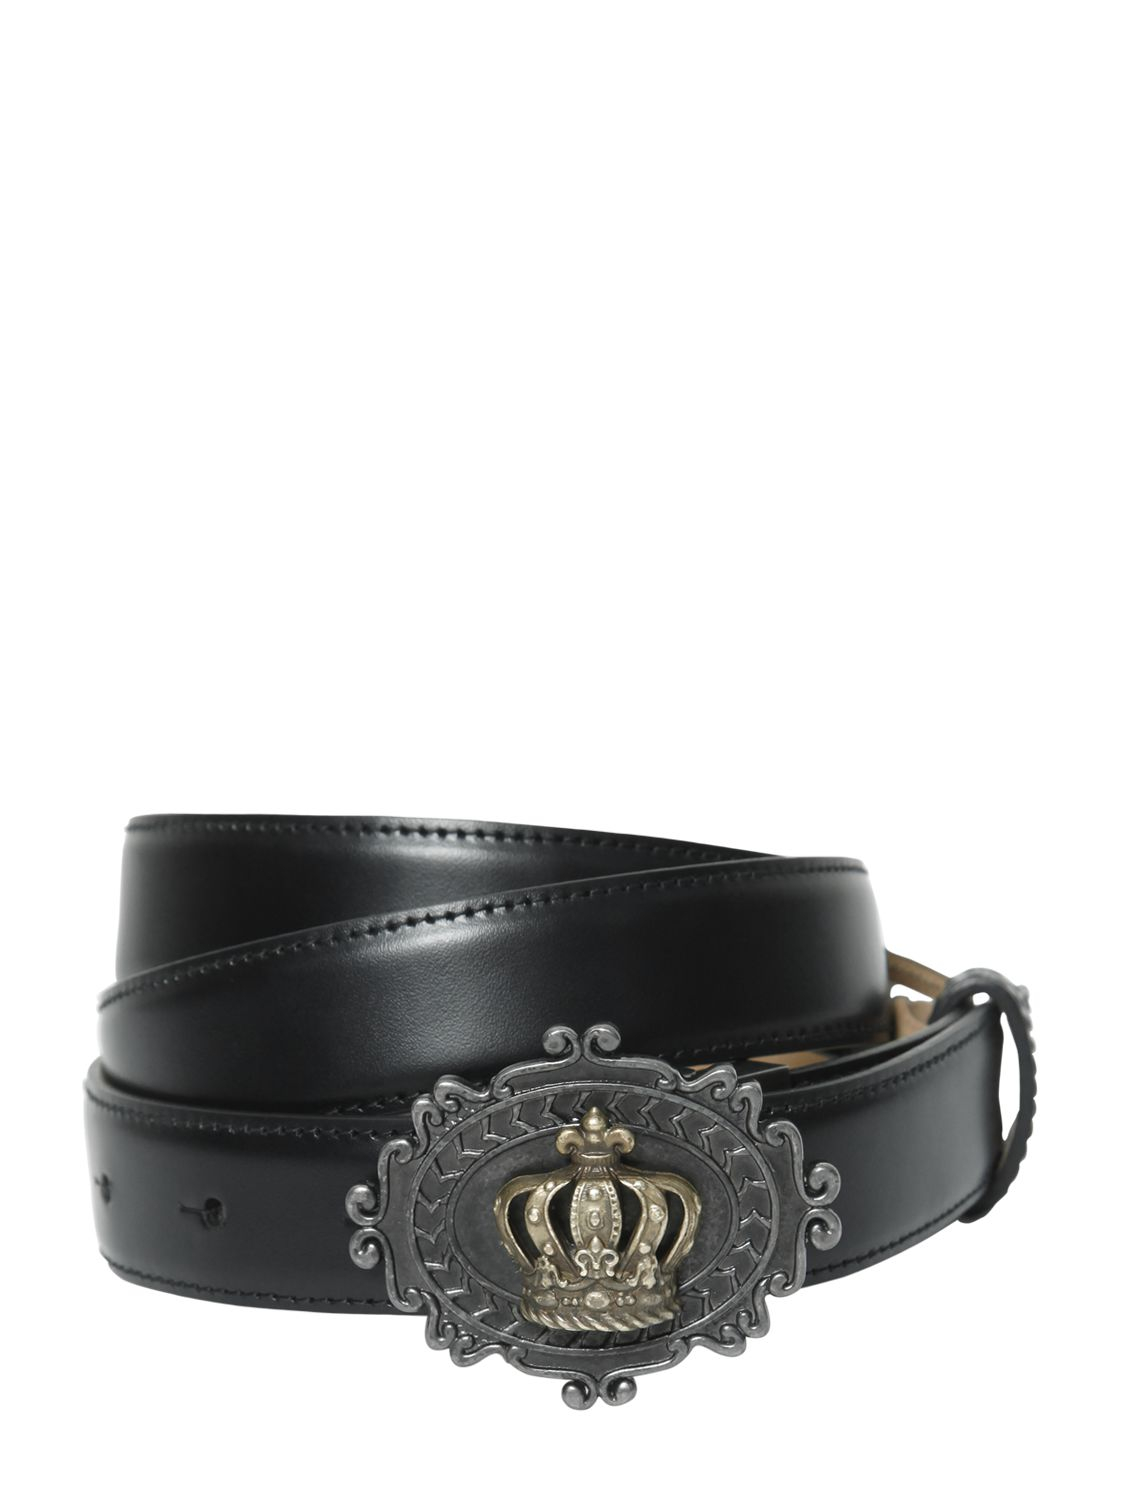 27f9f67d84 ... discount code for dolce gabbana 25mm crown buckle leather belt in black  for men lyst 0015e